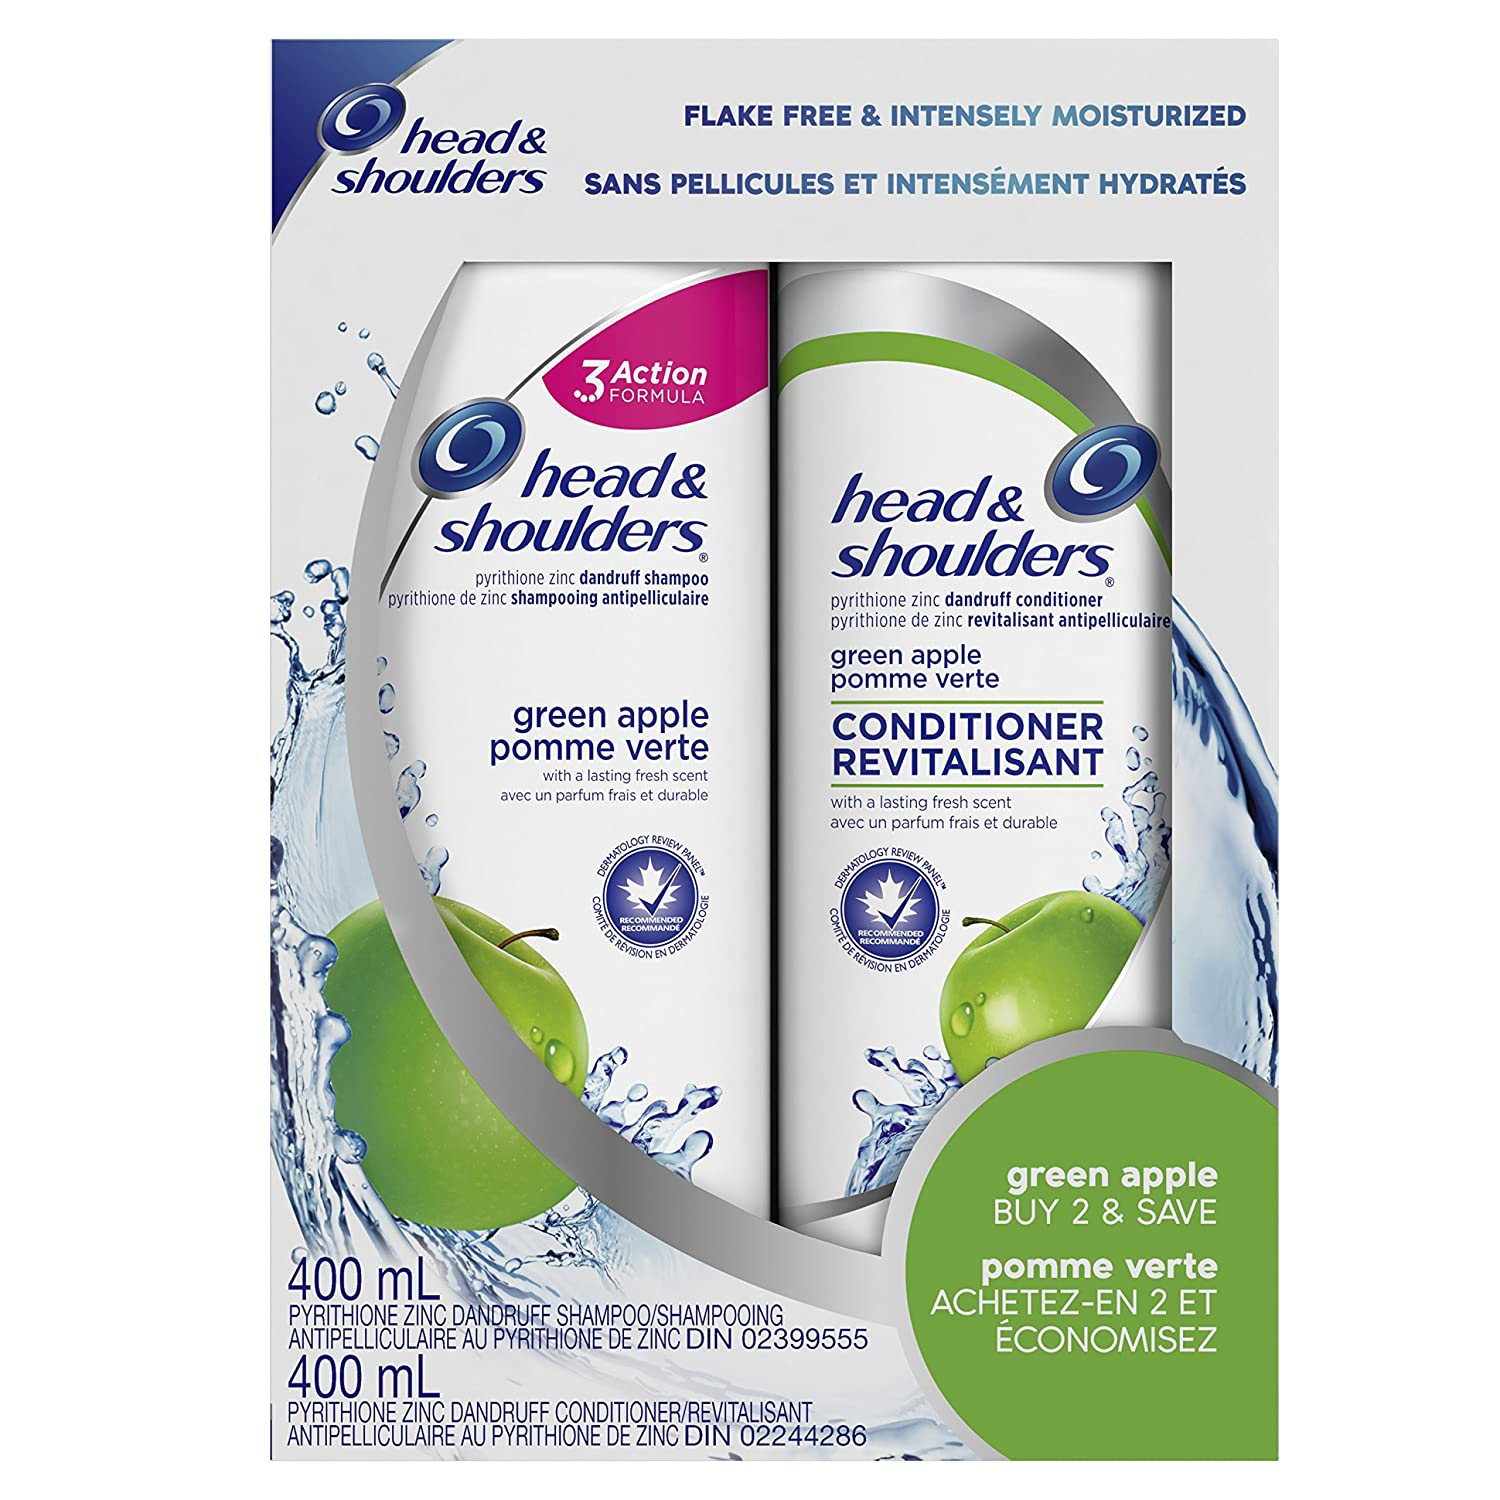 Head & Shoulders Smooth & Silky 2In1 Dandruff Shampoo + Conditioner, 380ml Procter and Gamble